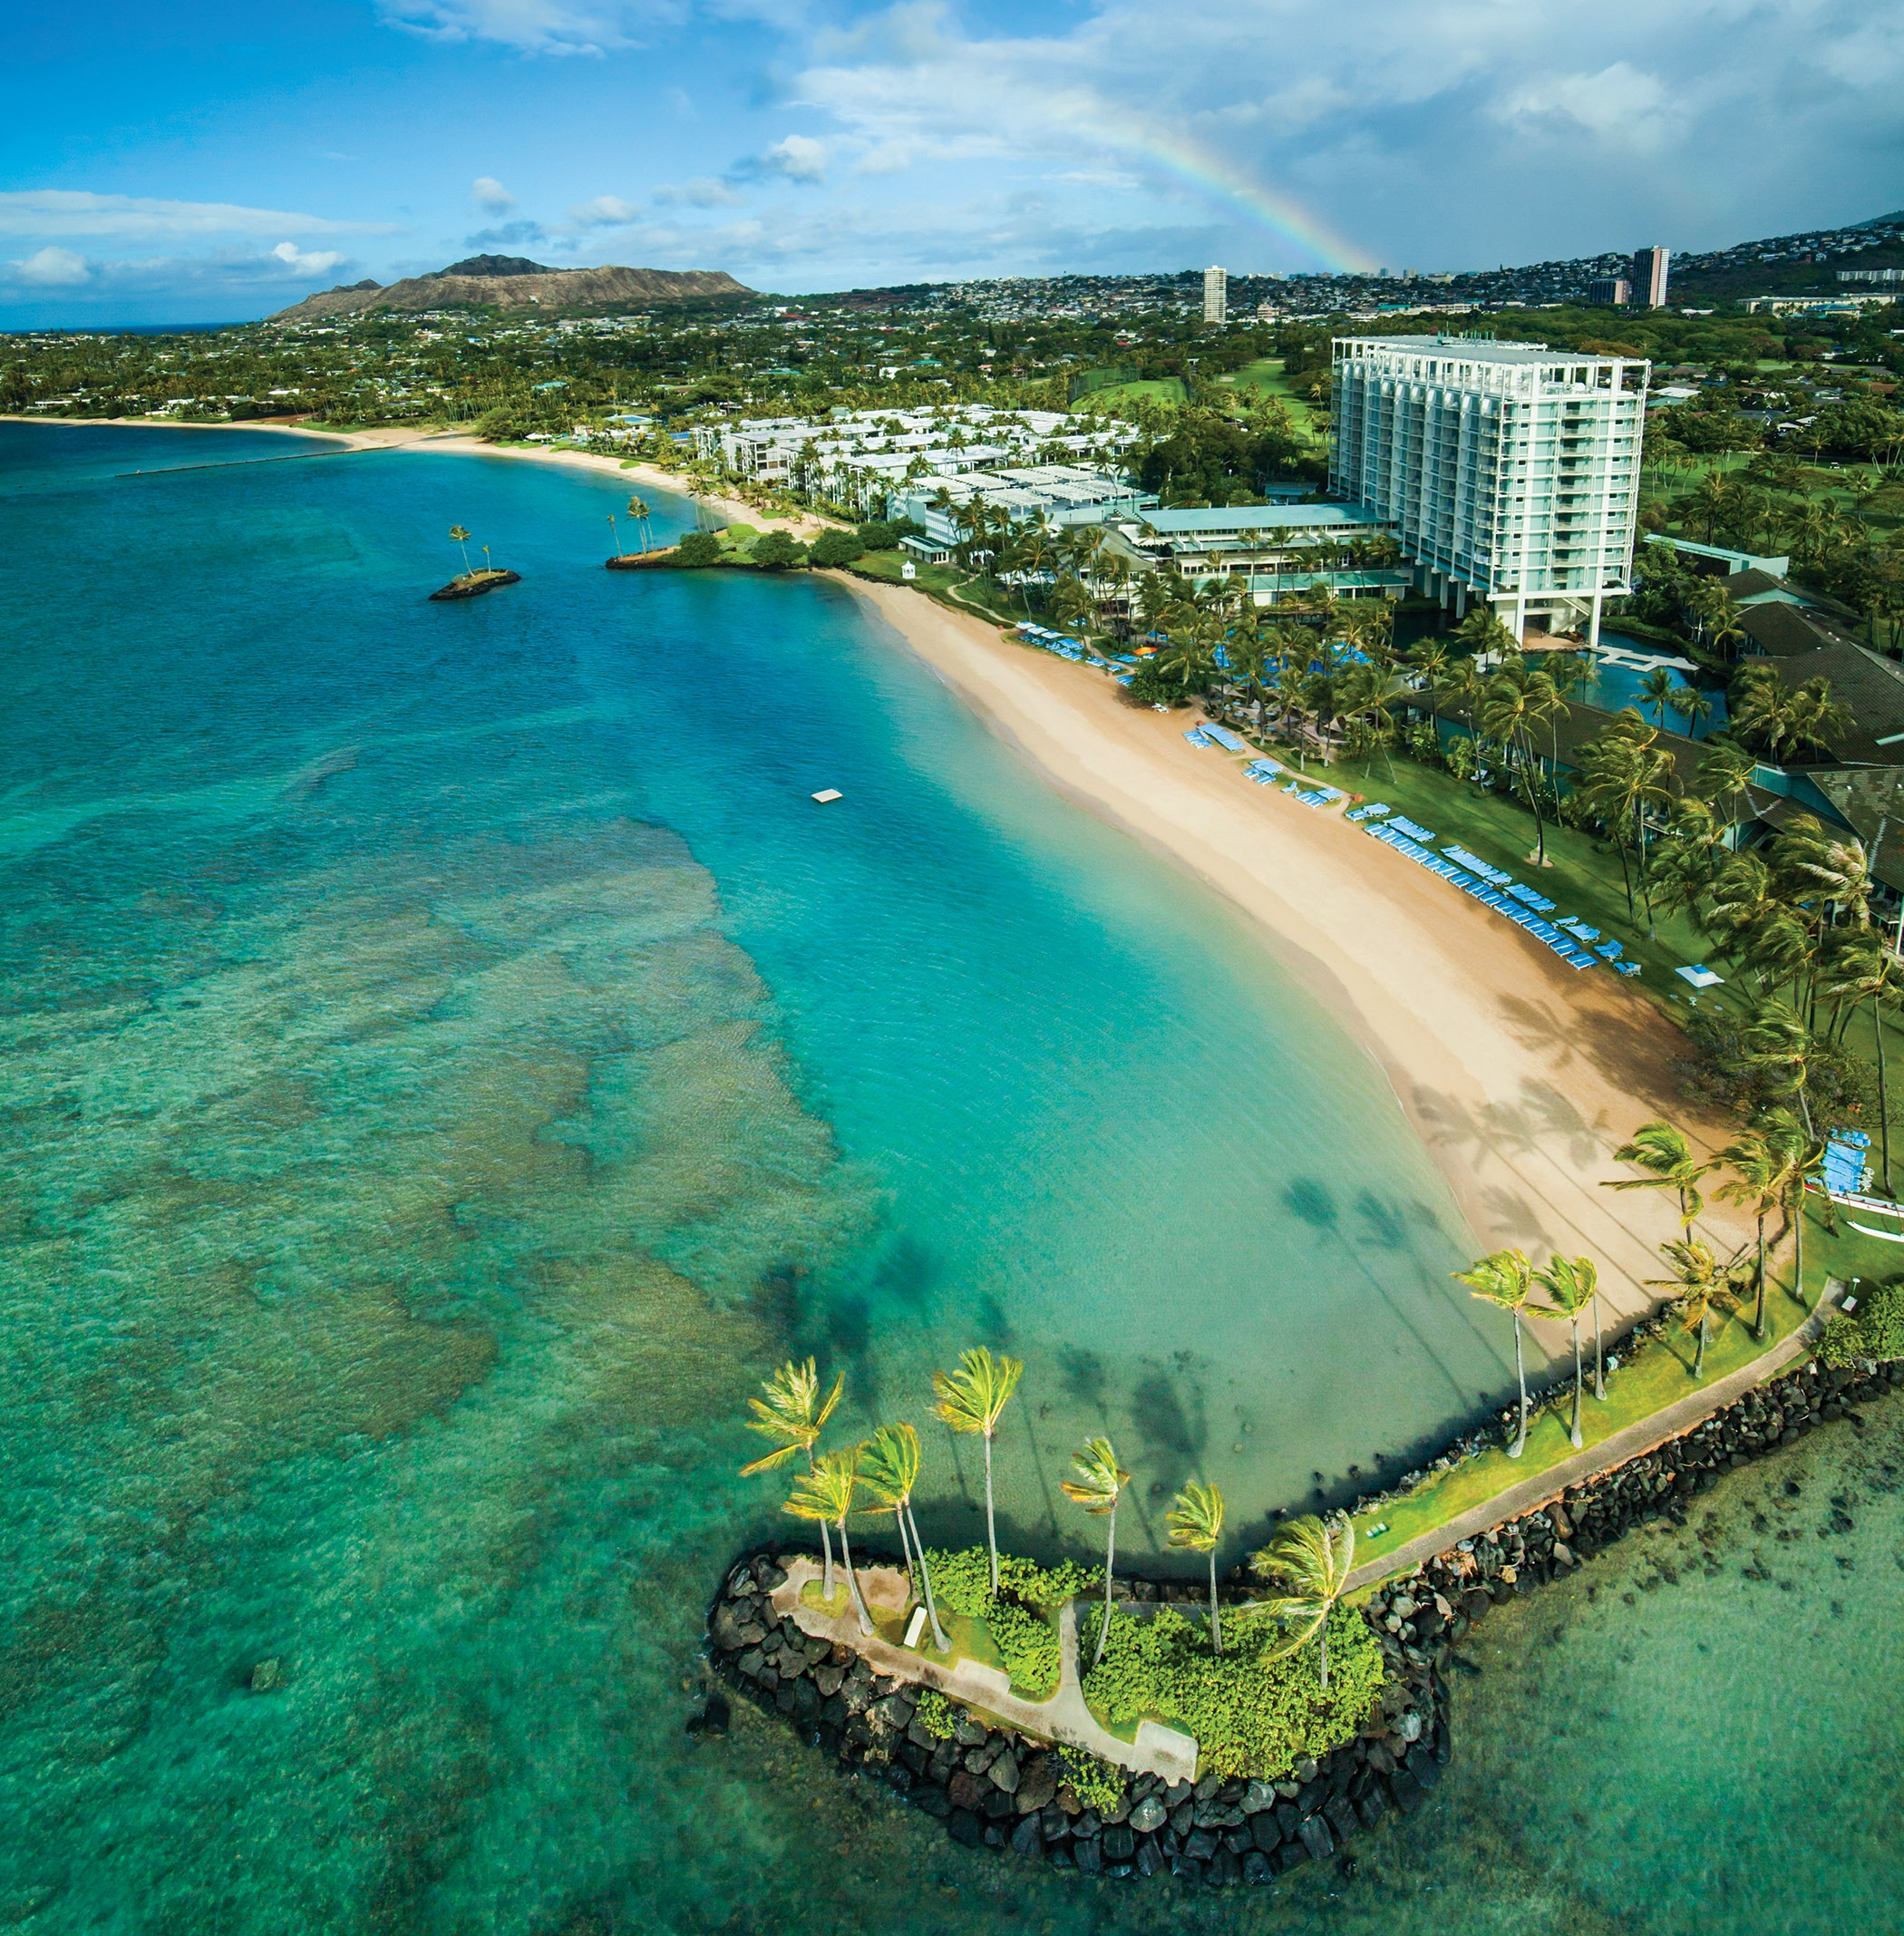 The KahalaHotel & Resort - Honolulu, HawaiiThe Kahala Hotel & Resort holds the distinction of having every US president from Lyndon Johnson to Barack Obama stay at the hotel. Through the 70s and 80s, The Kahala Hotel & Resort has been nicknamed